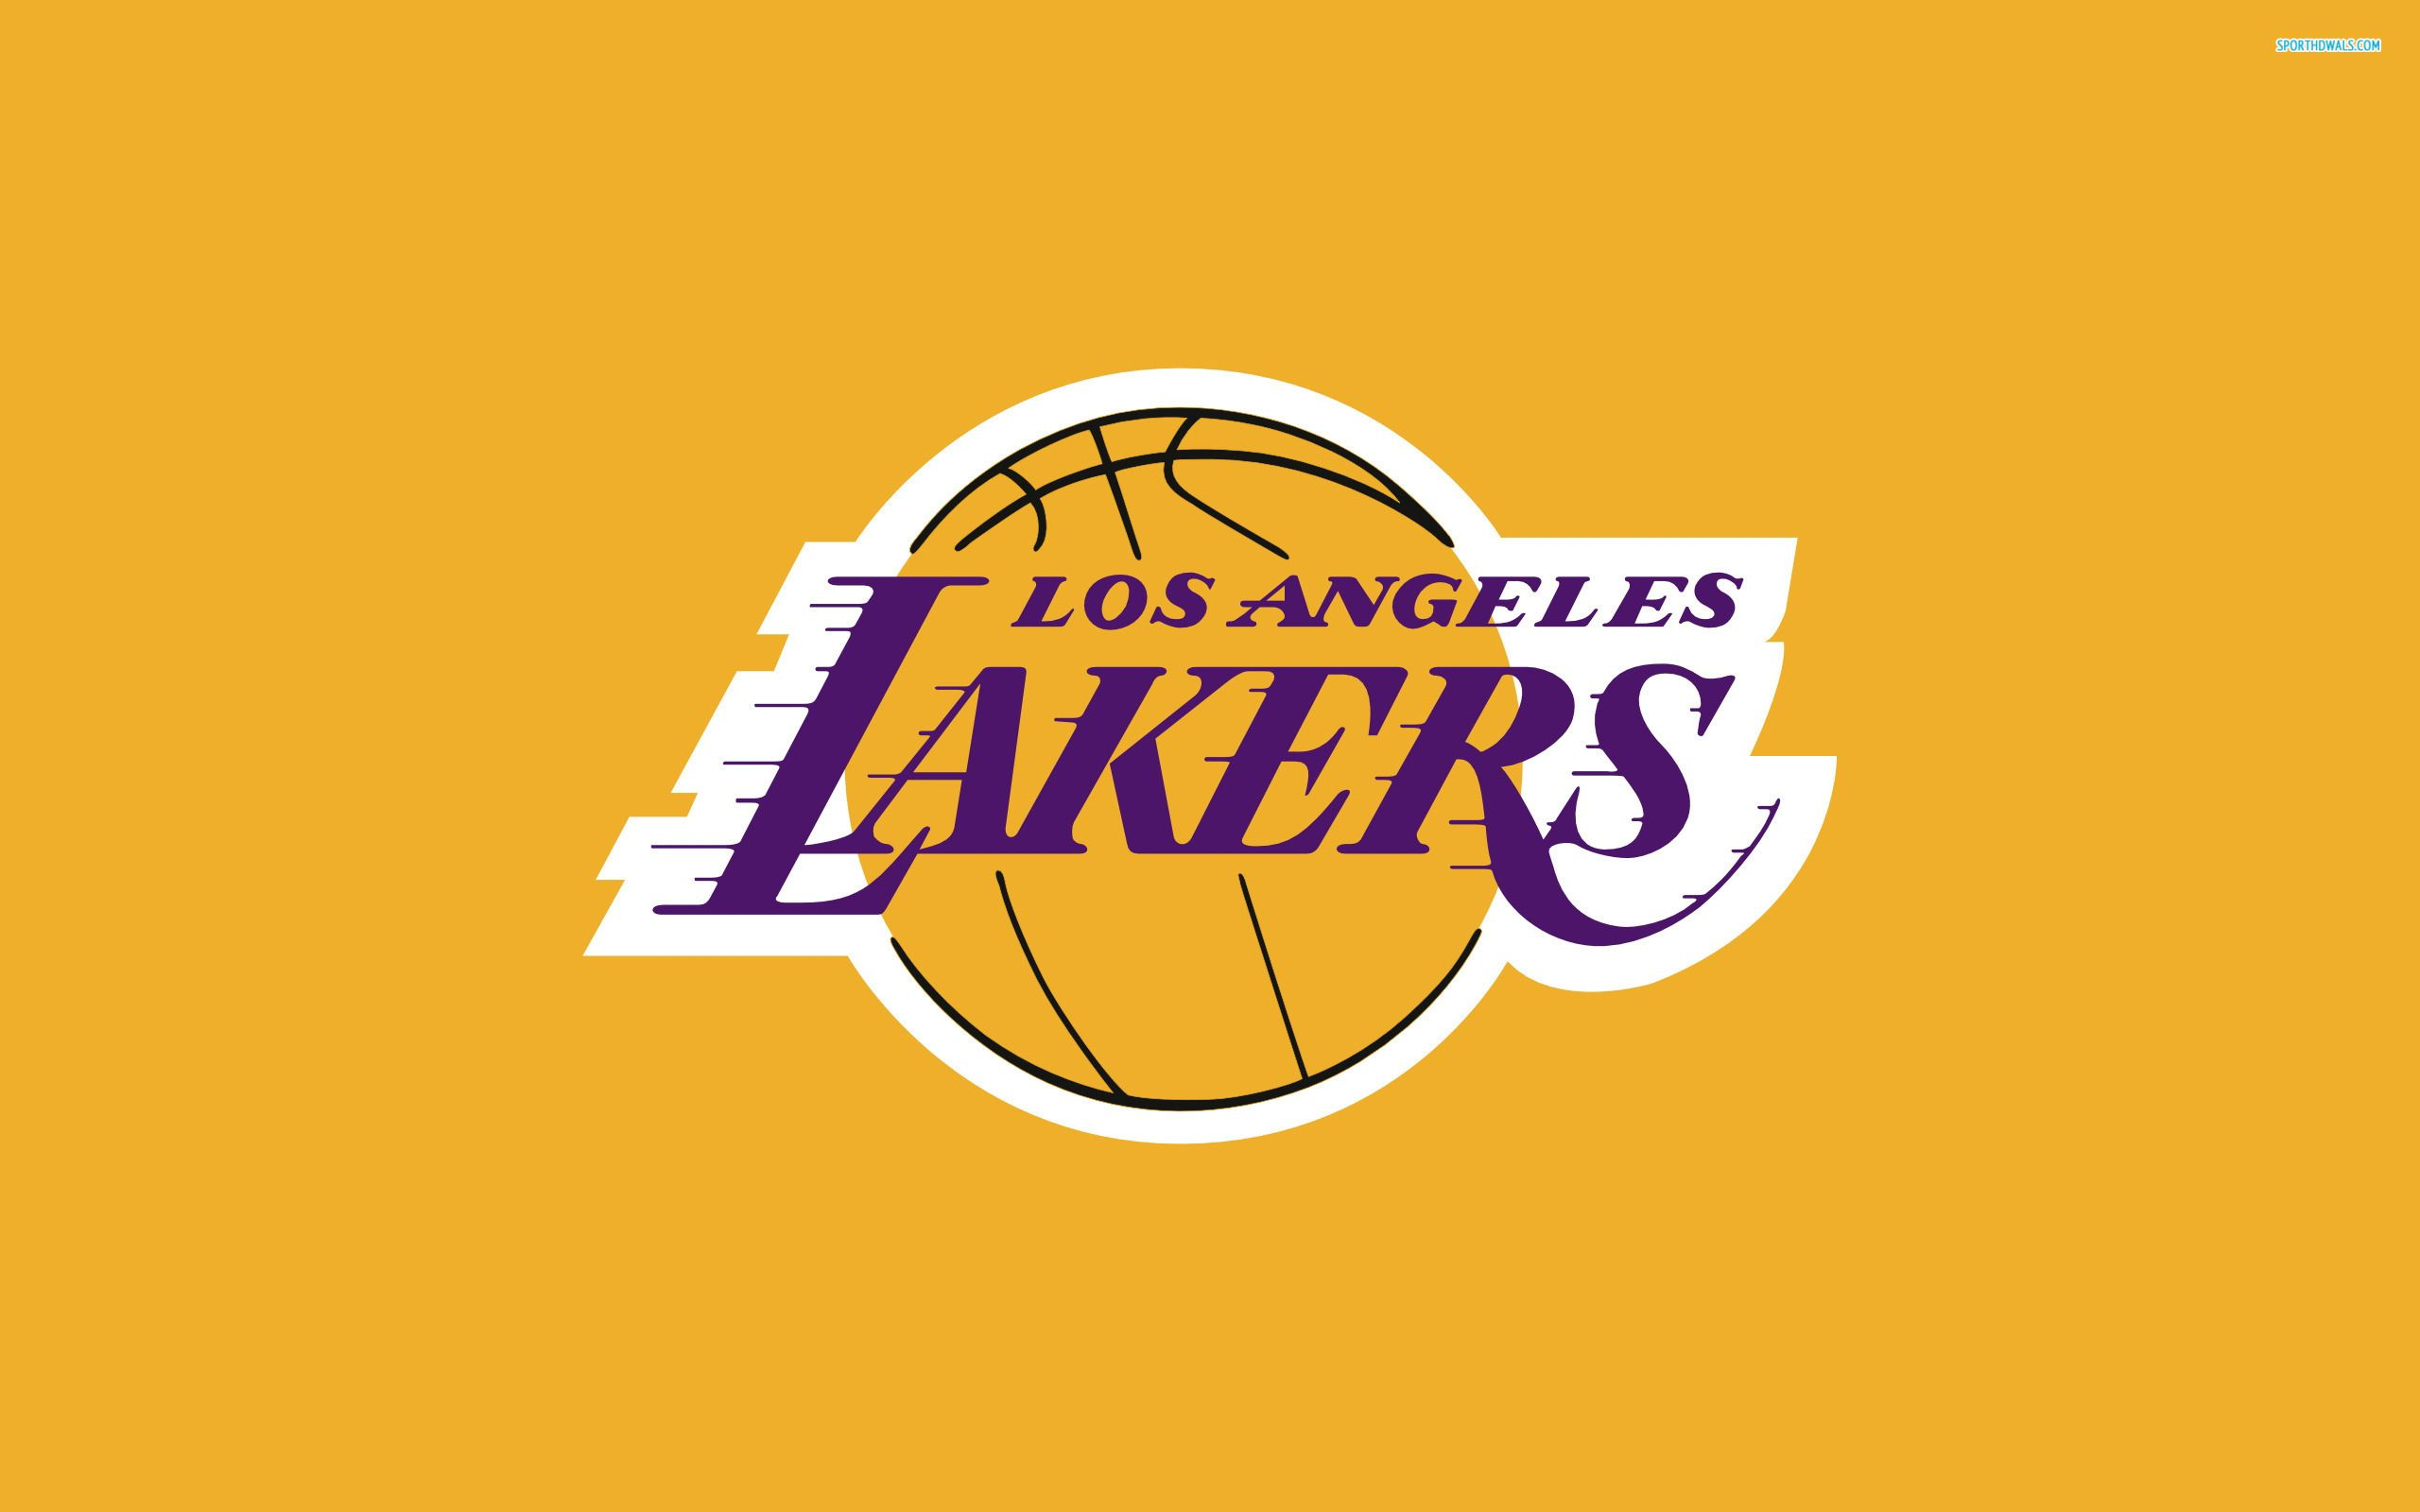 Los Angeles Lakers Wallpaper Los Angeles Lakers wallpaper 2560x1600